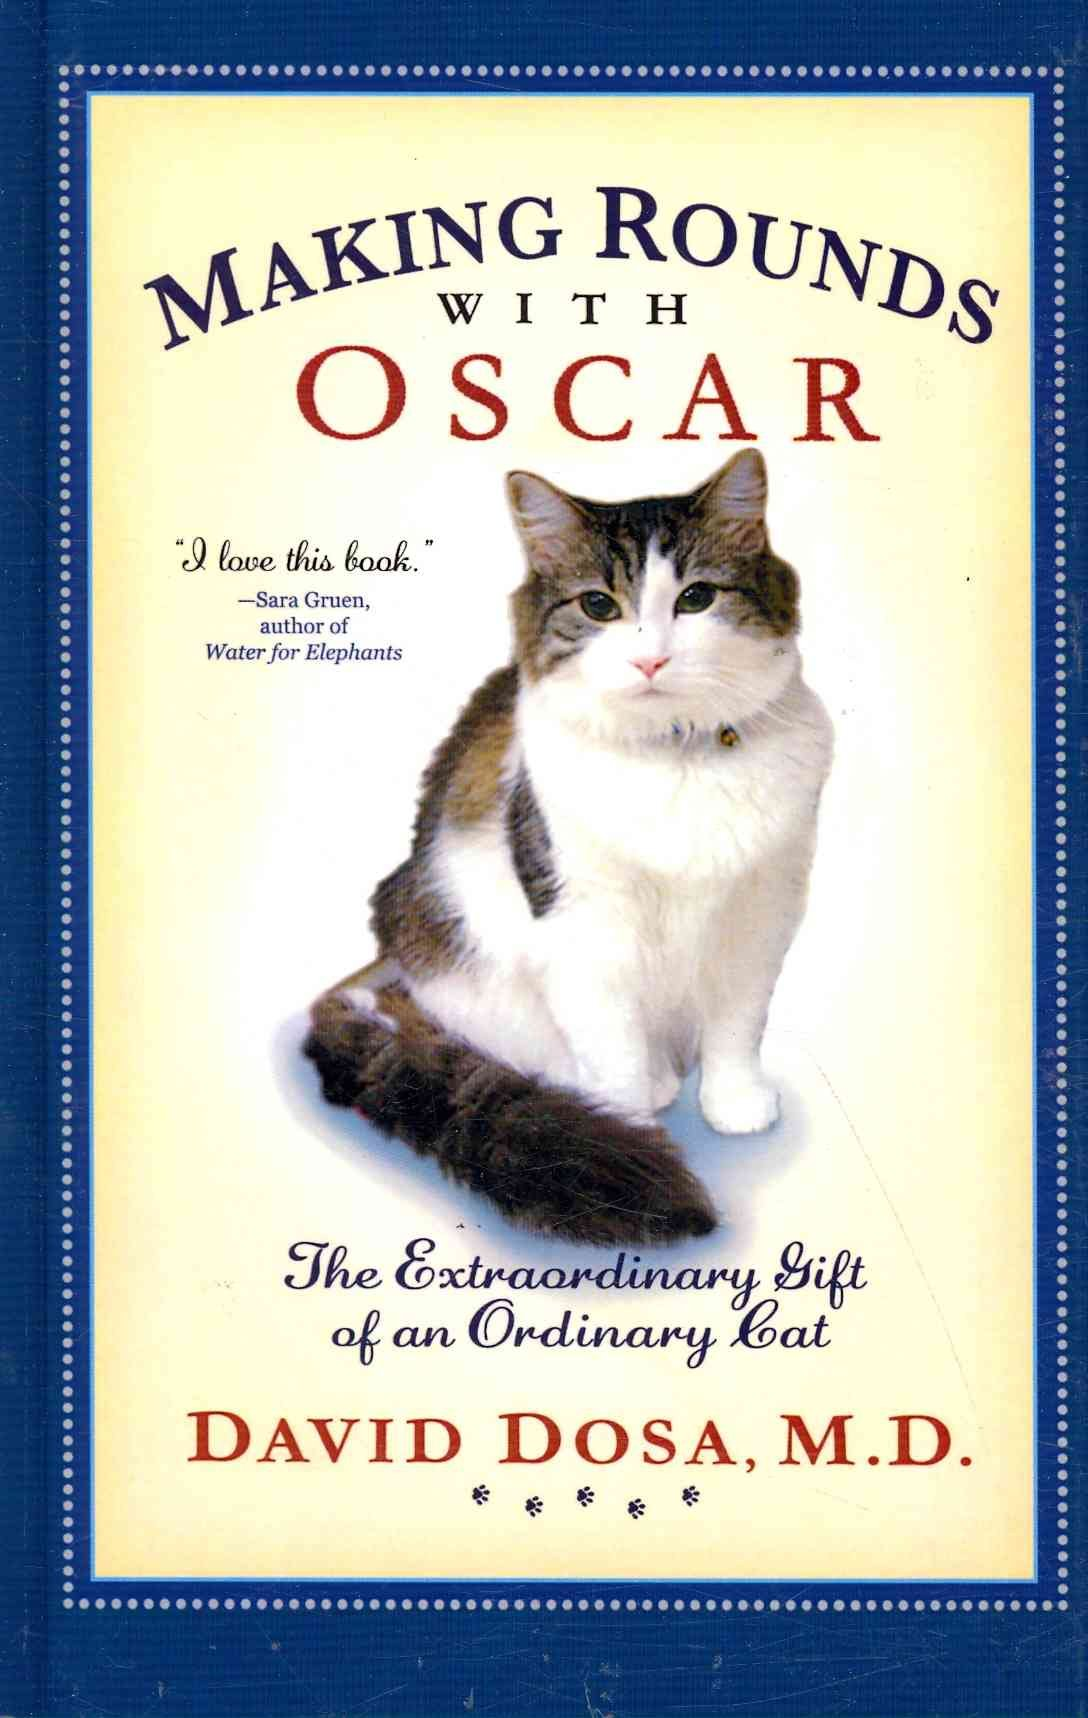 Making Rounds with Oscar: The Extraordinary Gift of an Ordinary Cat (Thorndike Press Large Print Nonfiction Series)